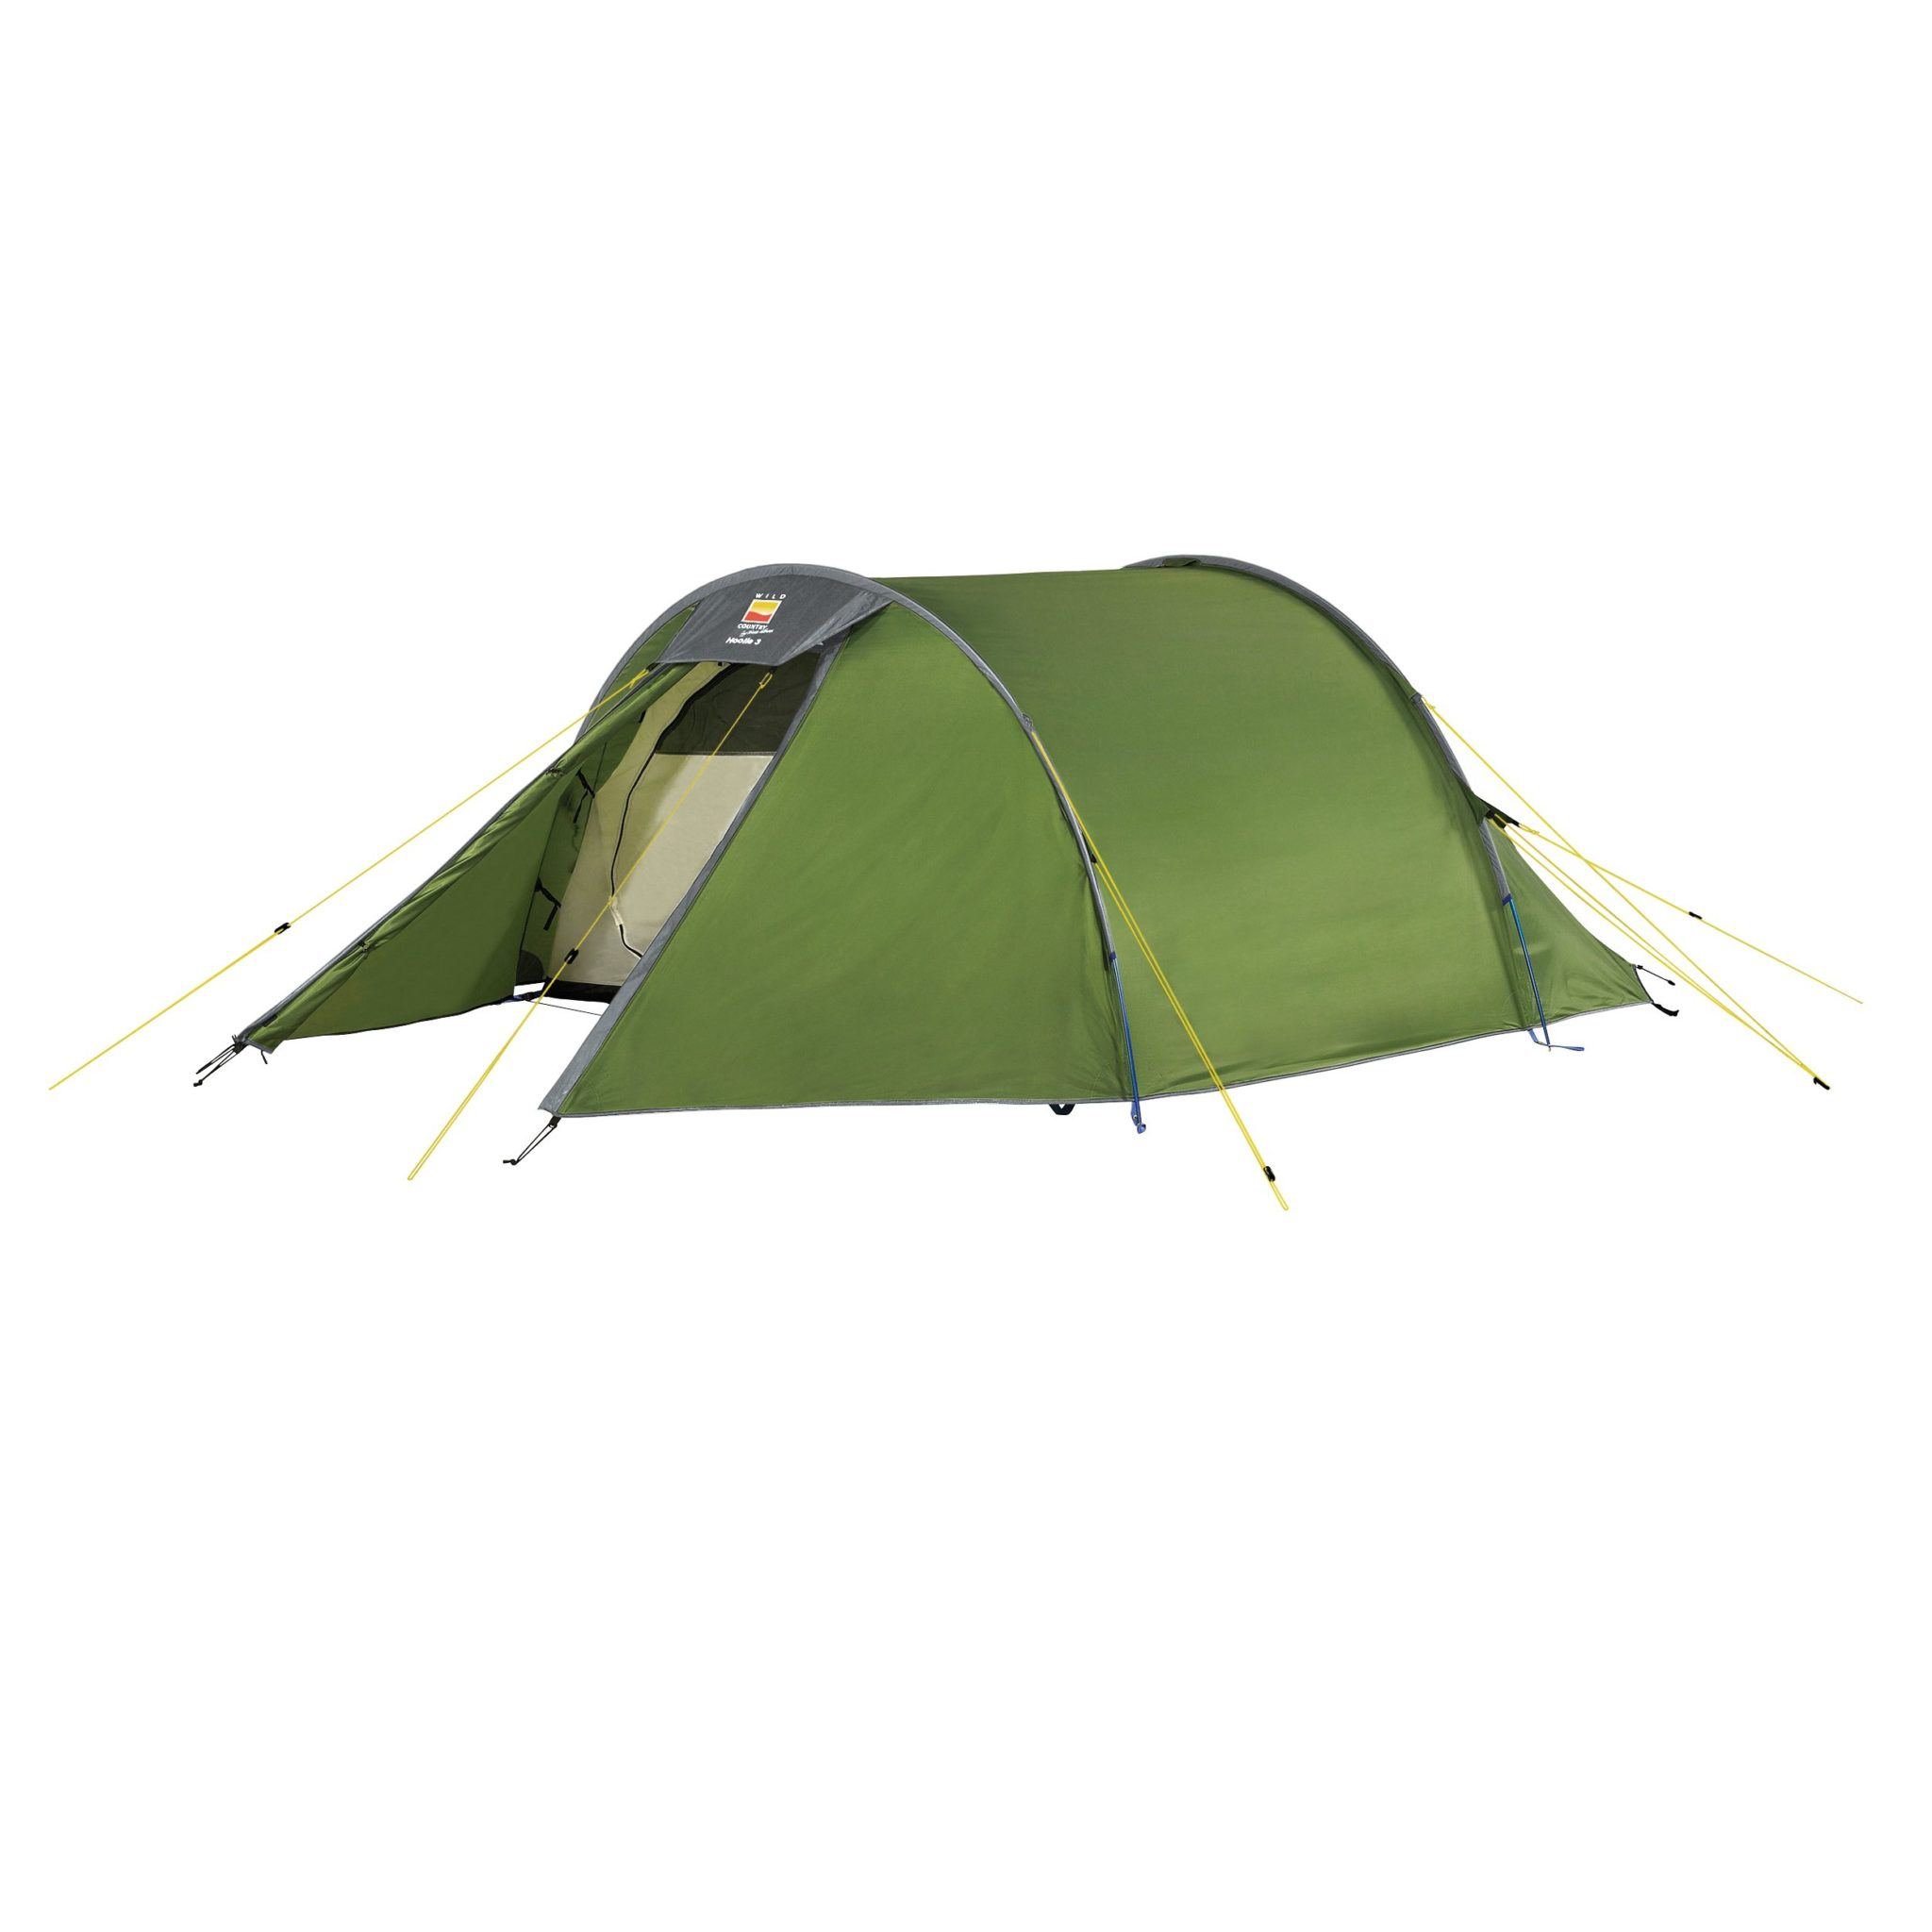 15 Best 3 Man Tents for Wild Camping in 2021 - Great ...